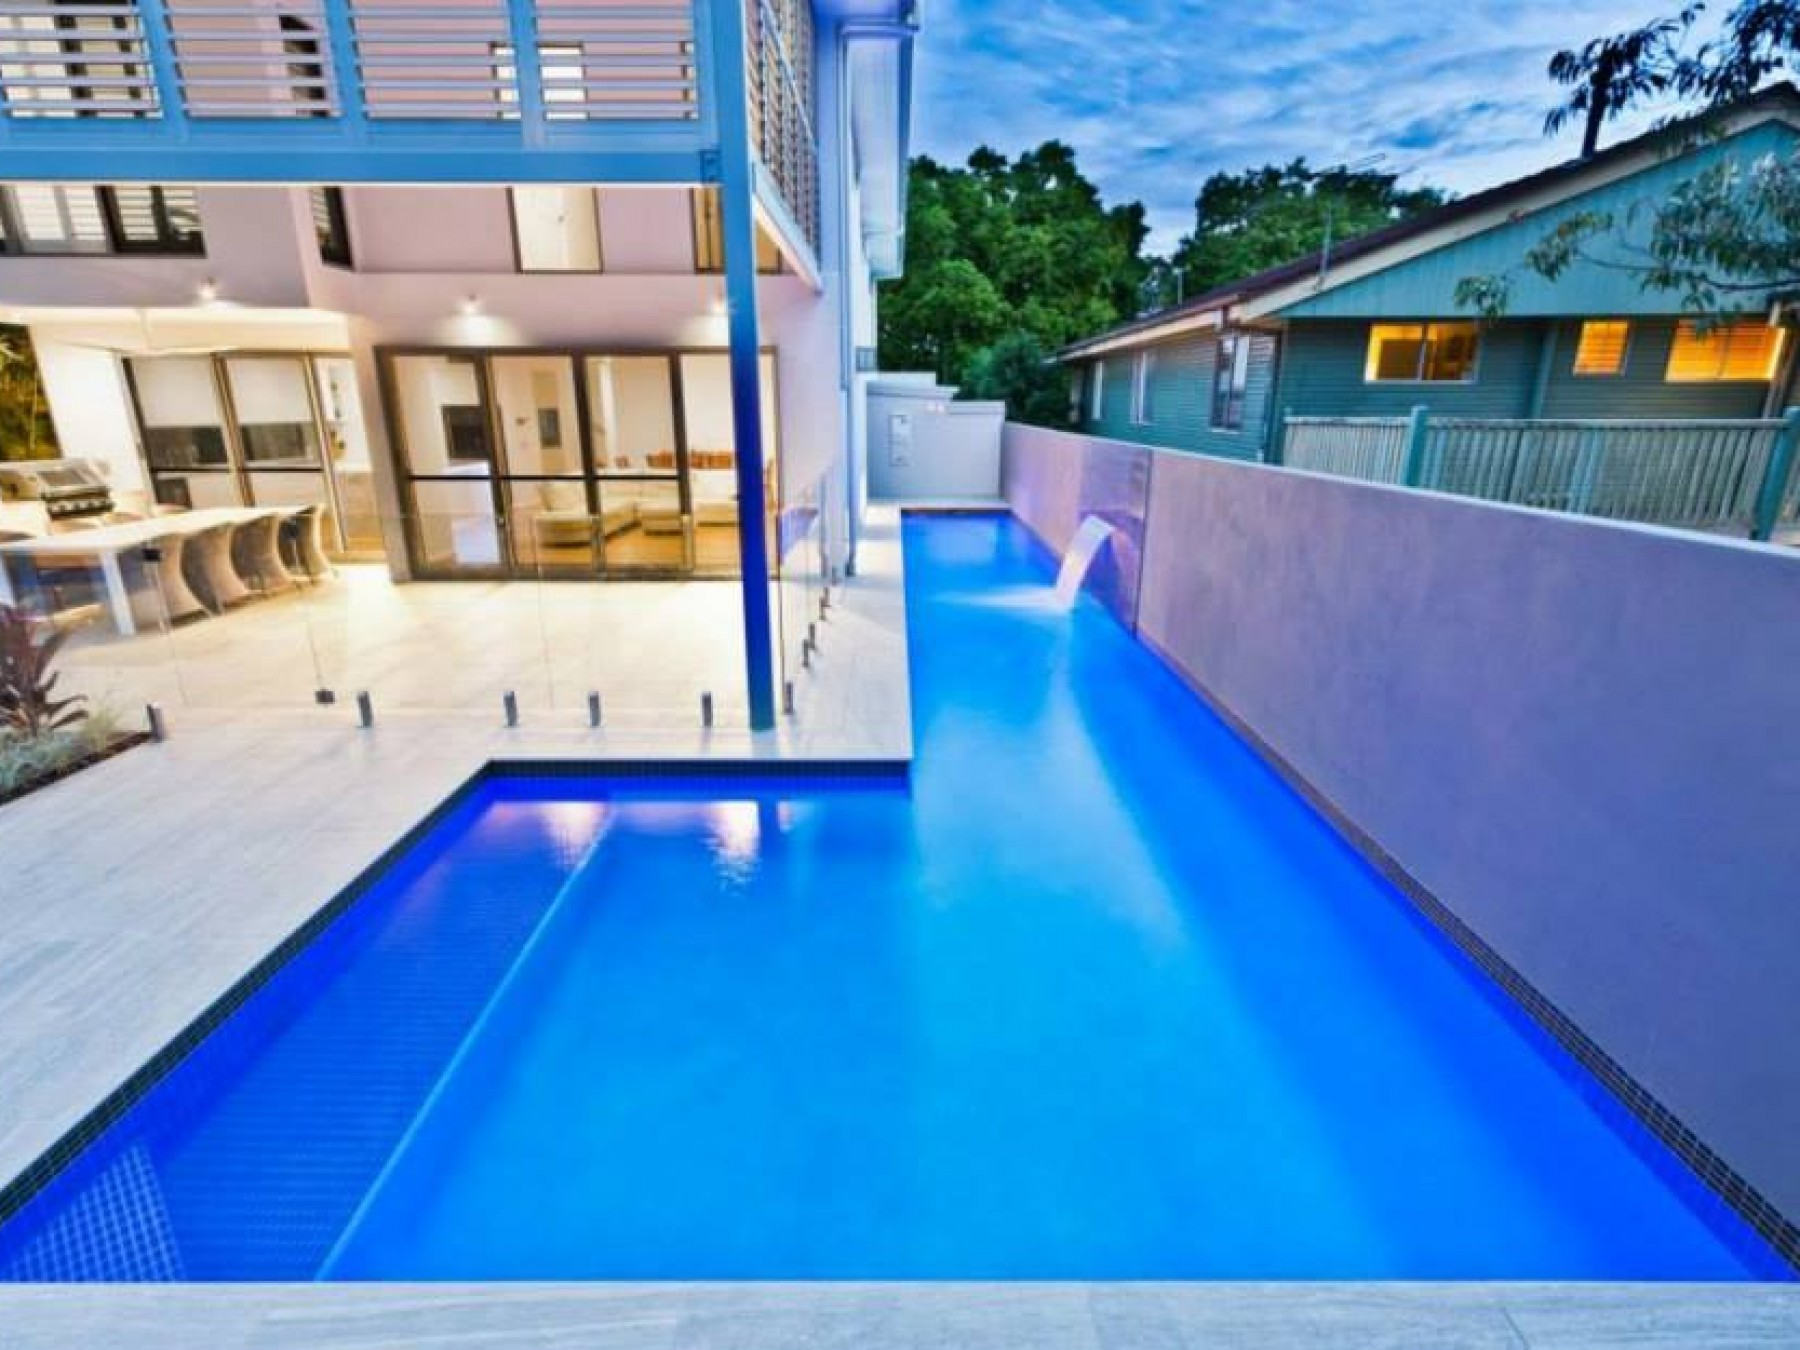 Selling or Leasing a pool in Carindale